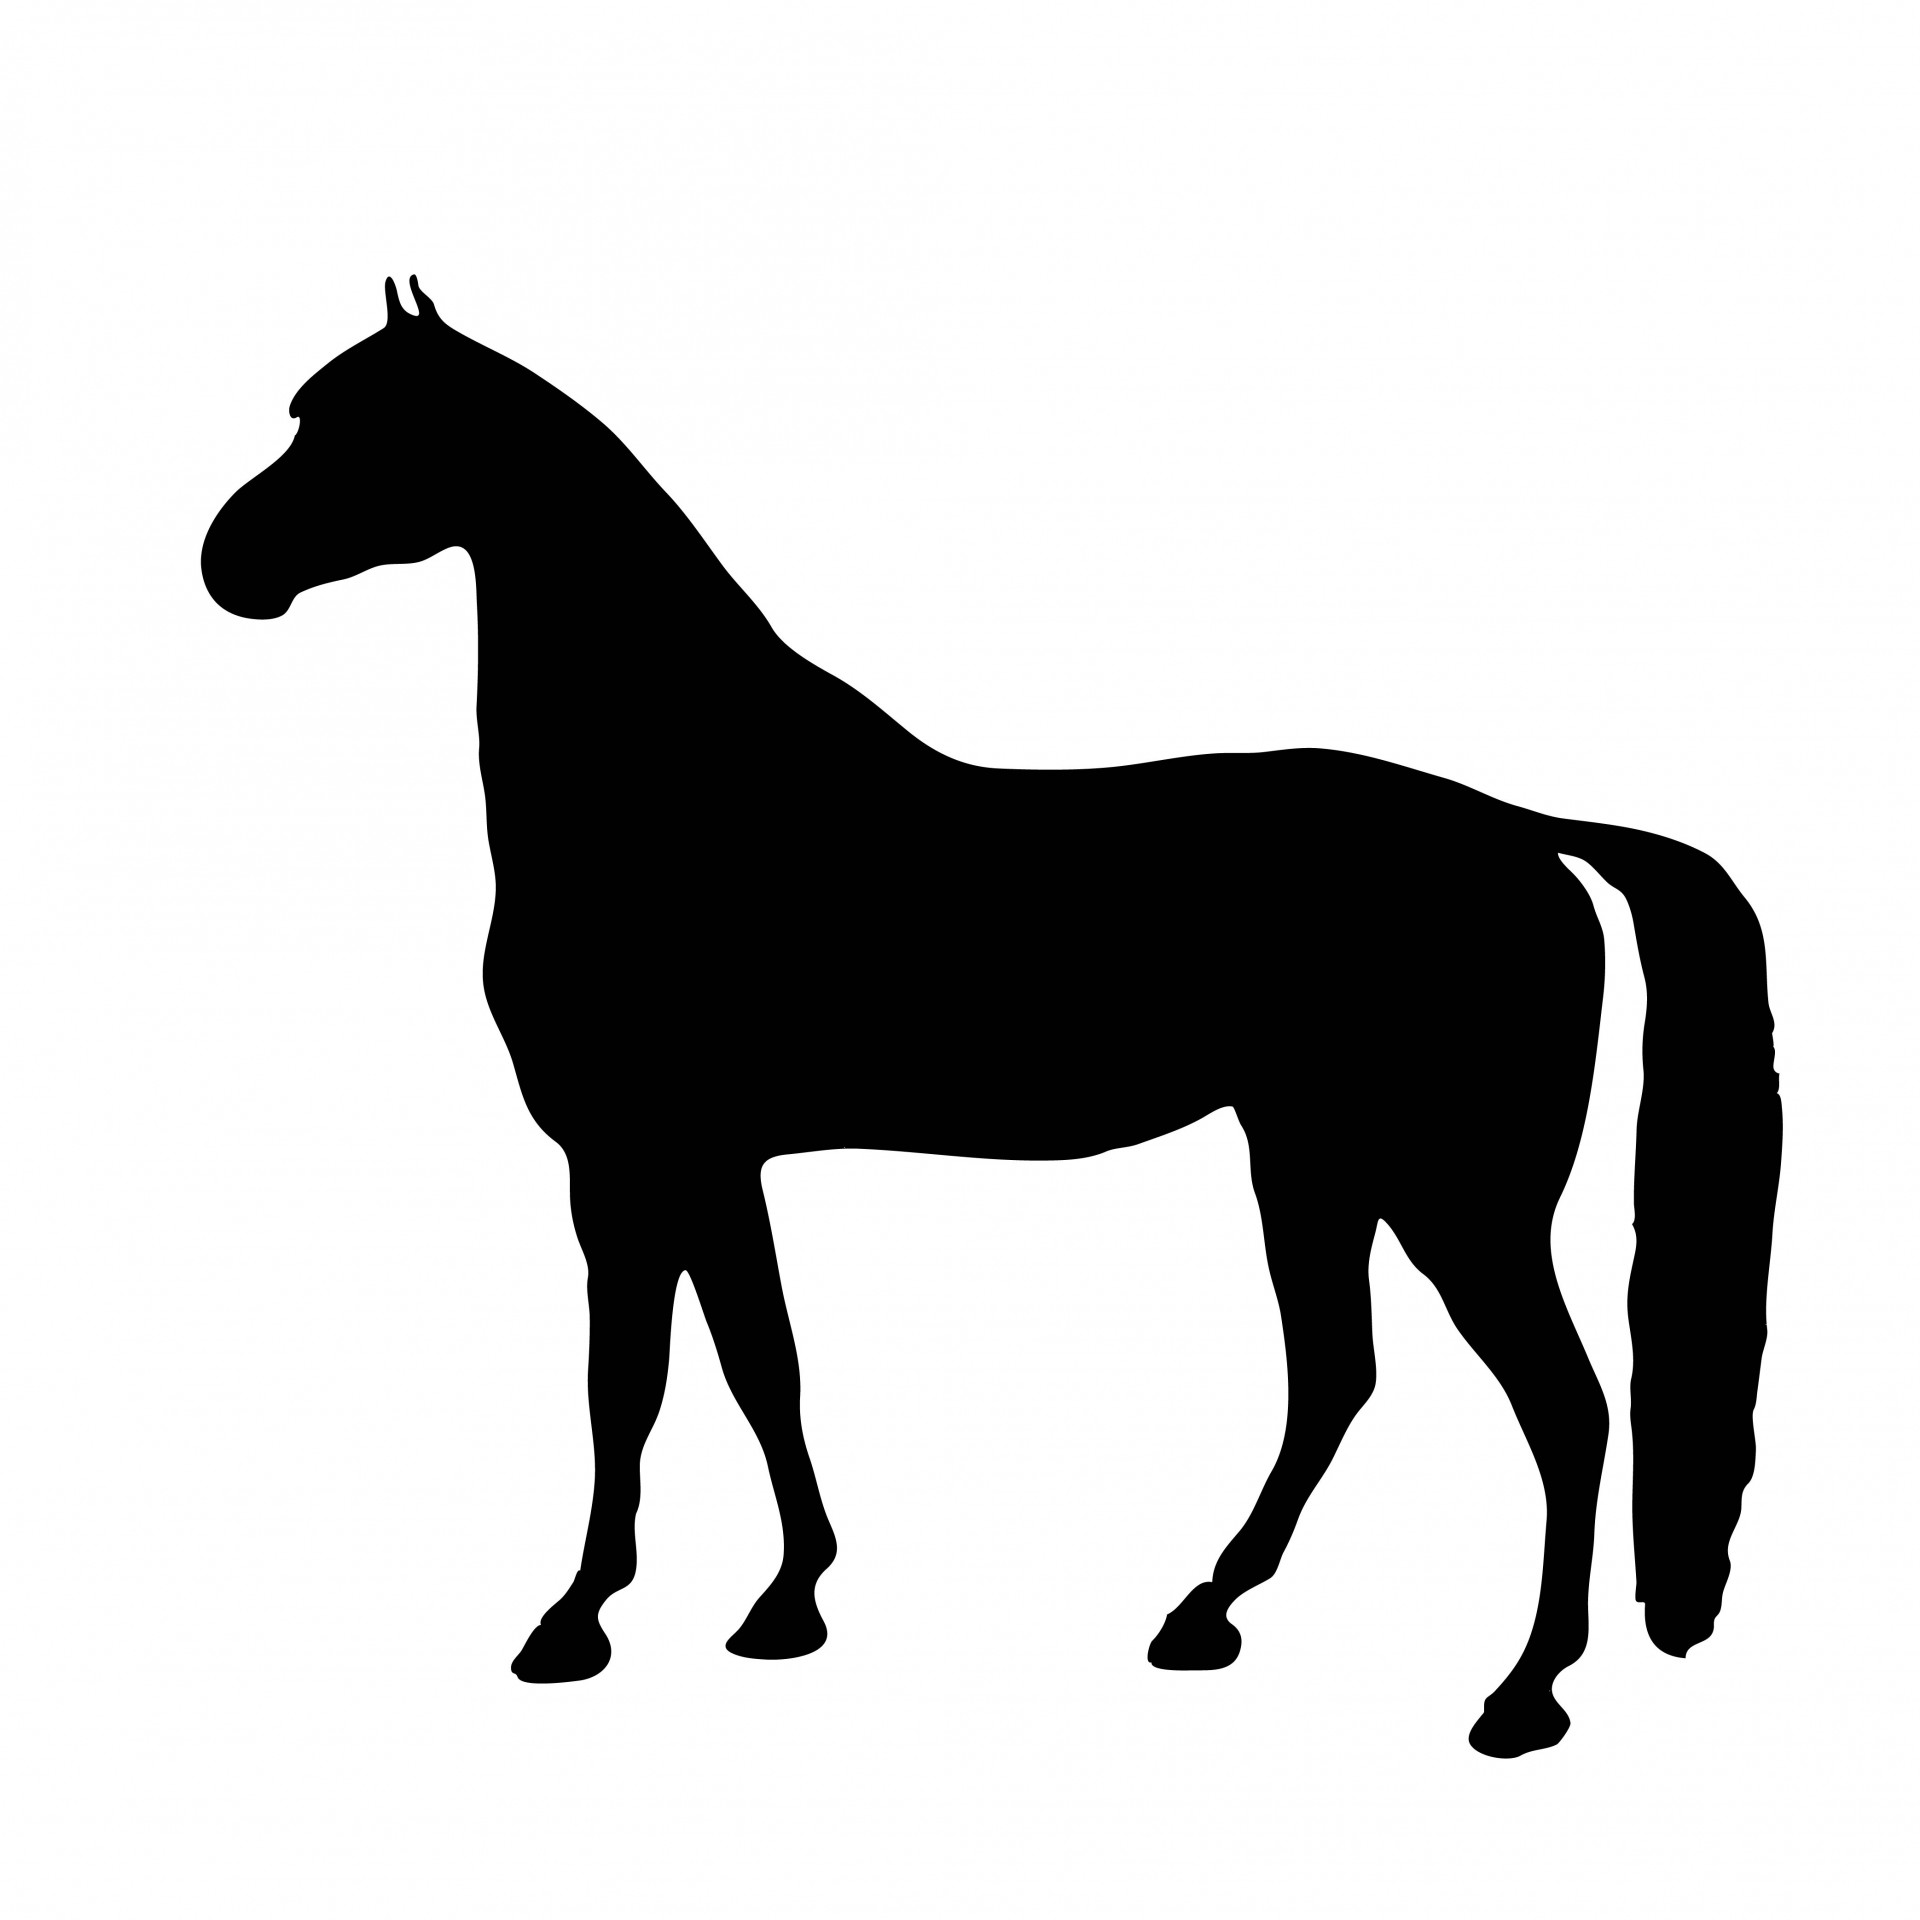 Pony silhouette clipart svg stock Horse,pony,thoroughbred,racehorse,black - free photo from ... svg stock